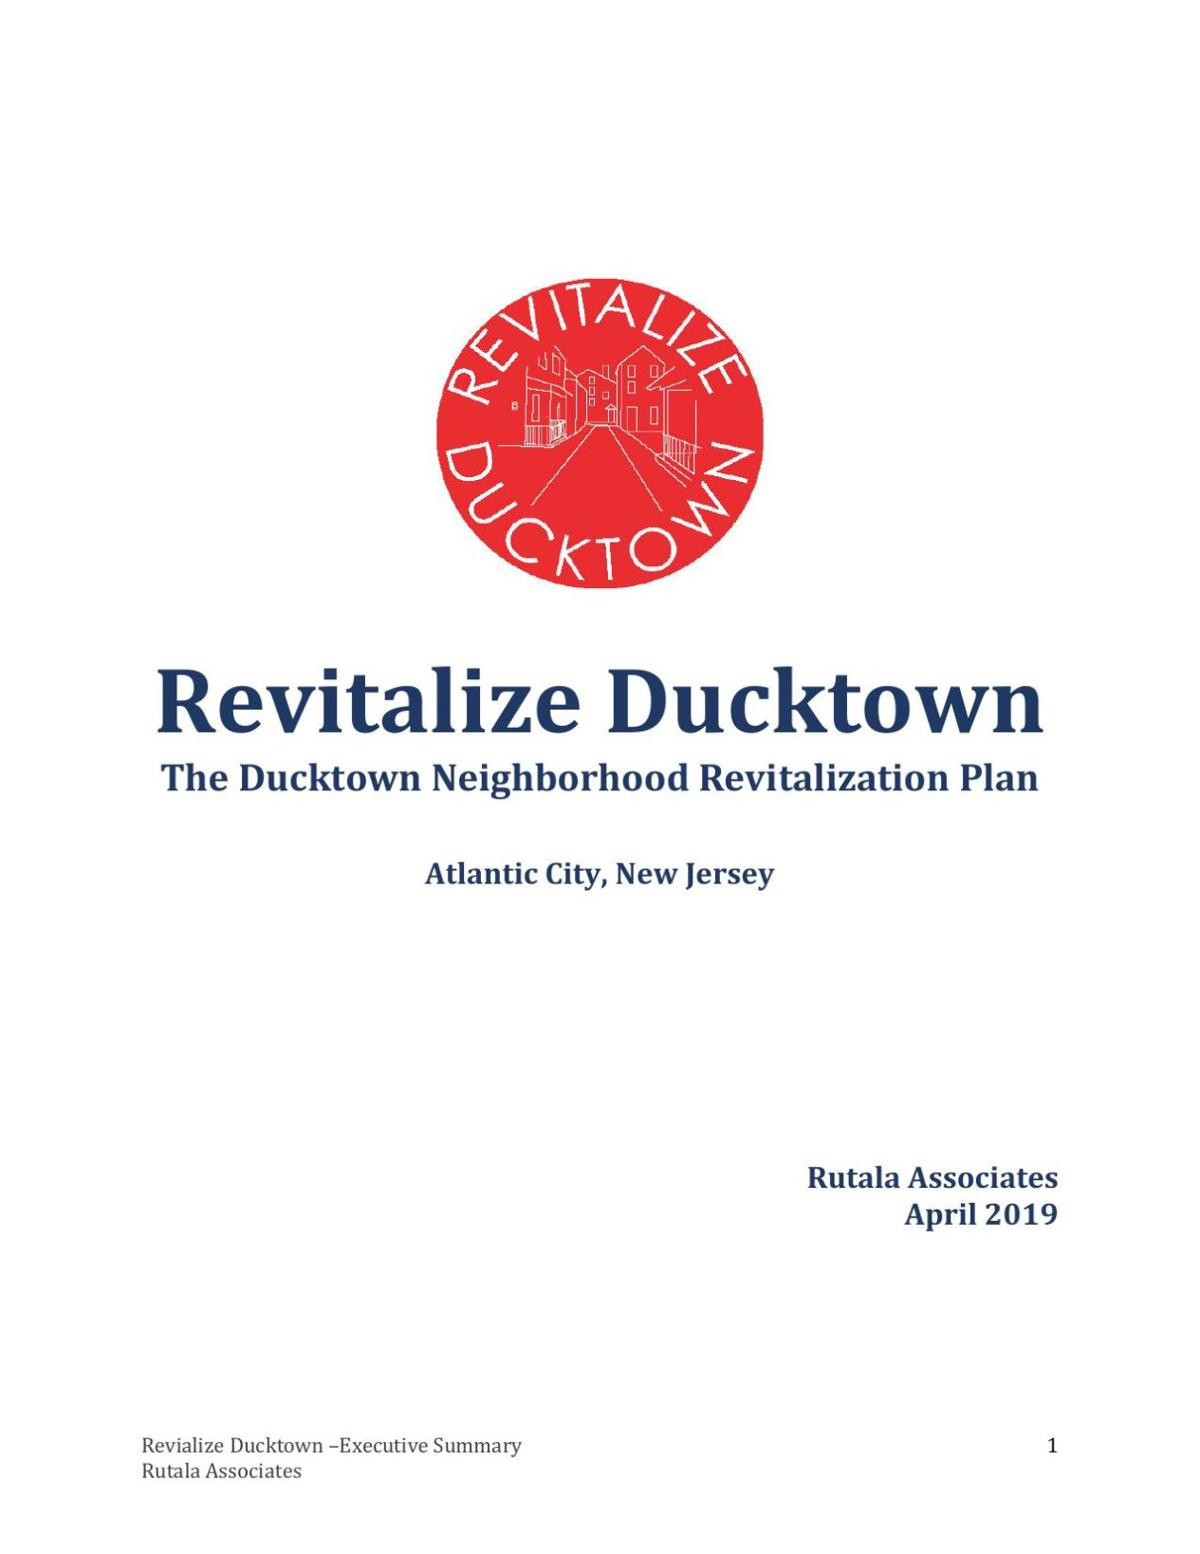 Ducktown Revitalization report